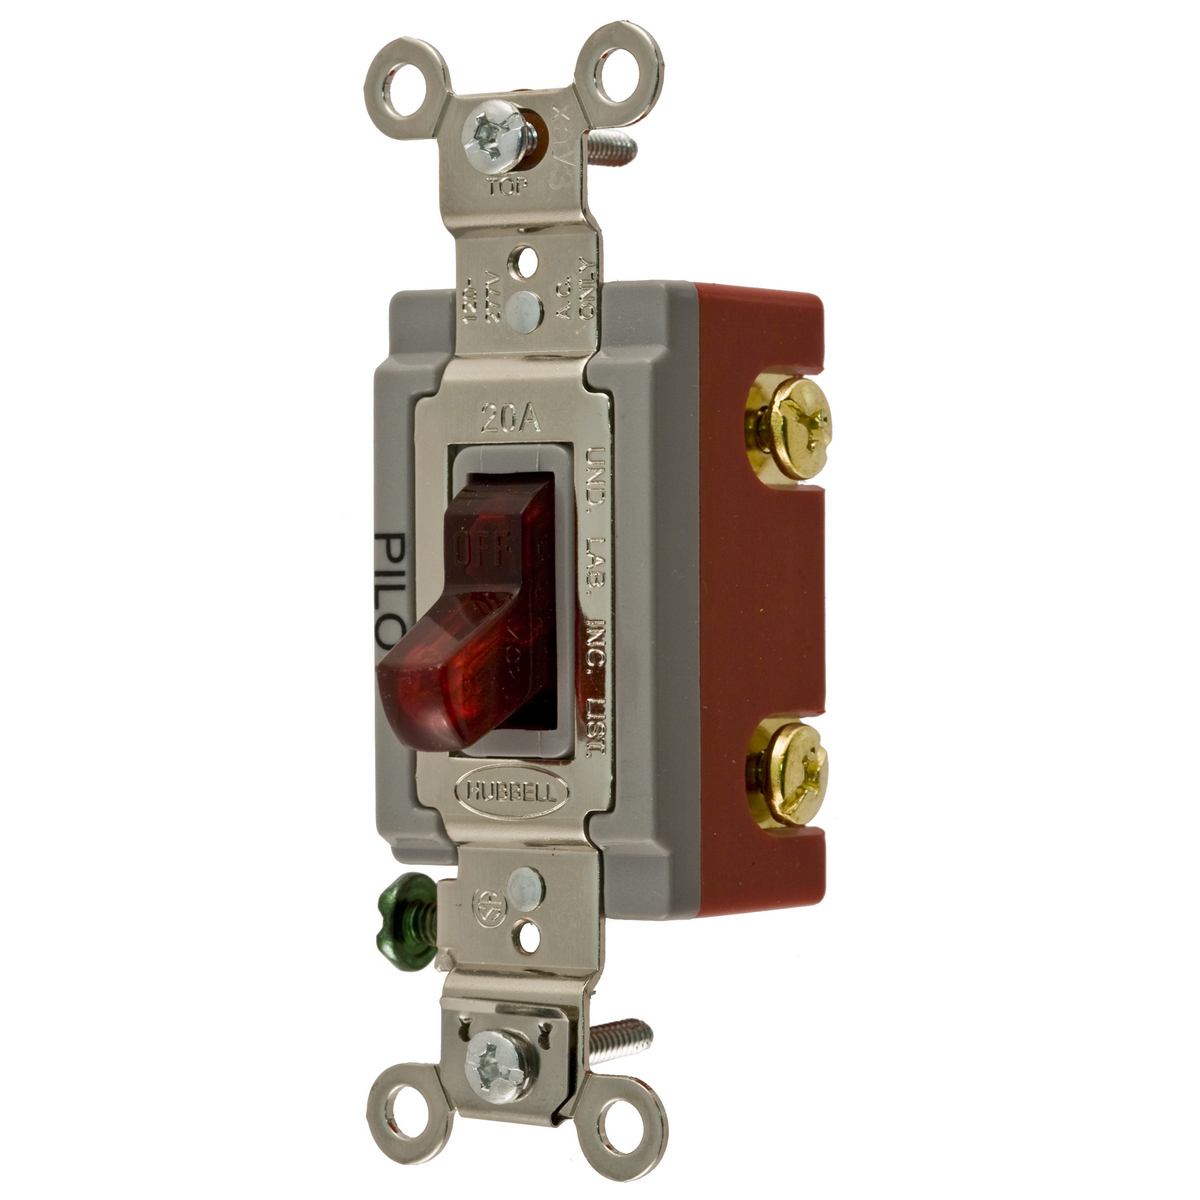 hight resolution of hbl1221pl wiring device kellems how to wire cooper 277 pilot light switch share the knownledge